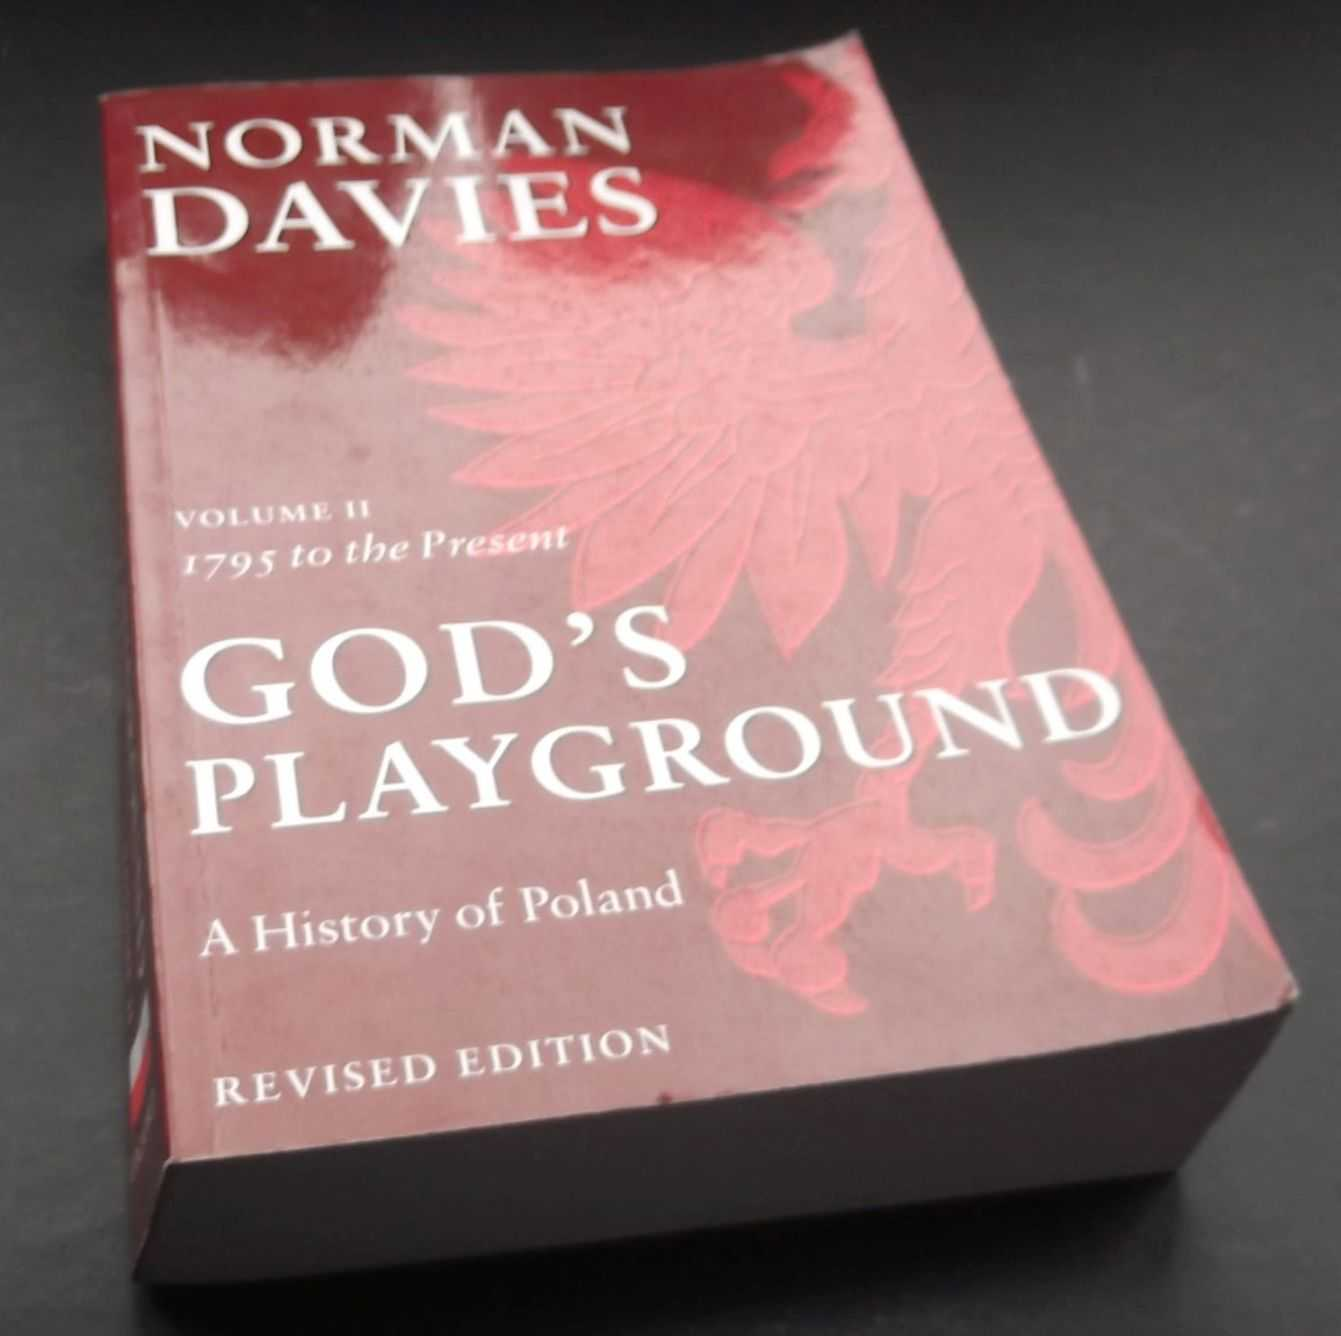 NORMAN DAVIES, God's Playground A History of Poland: Volume II: 1795 to the